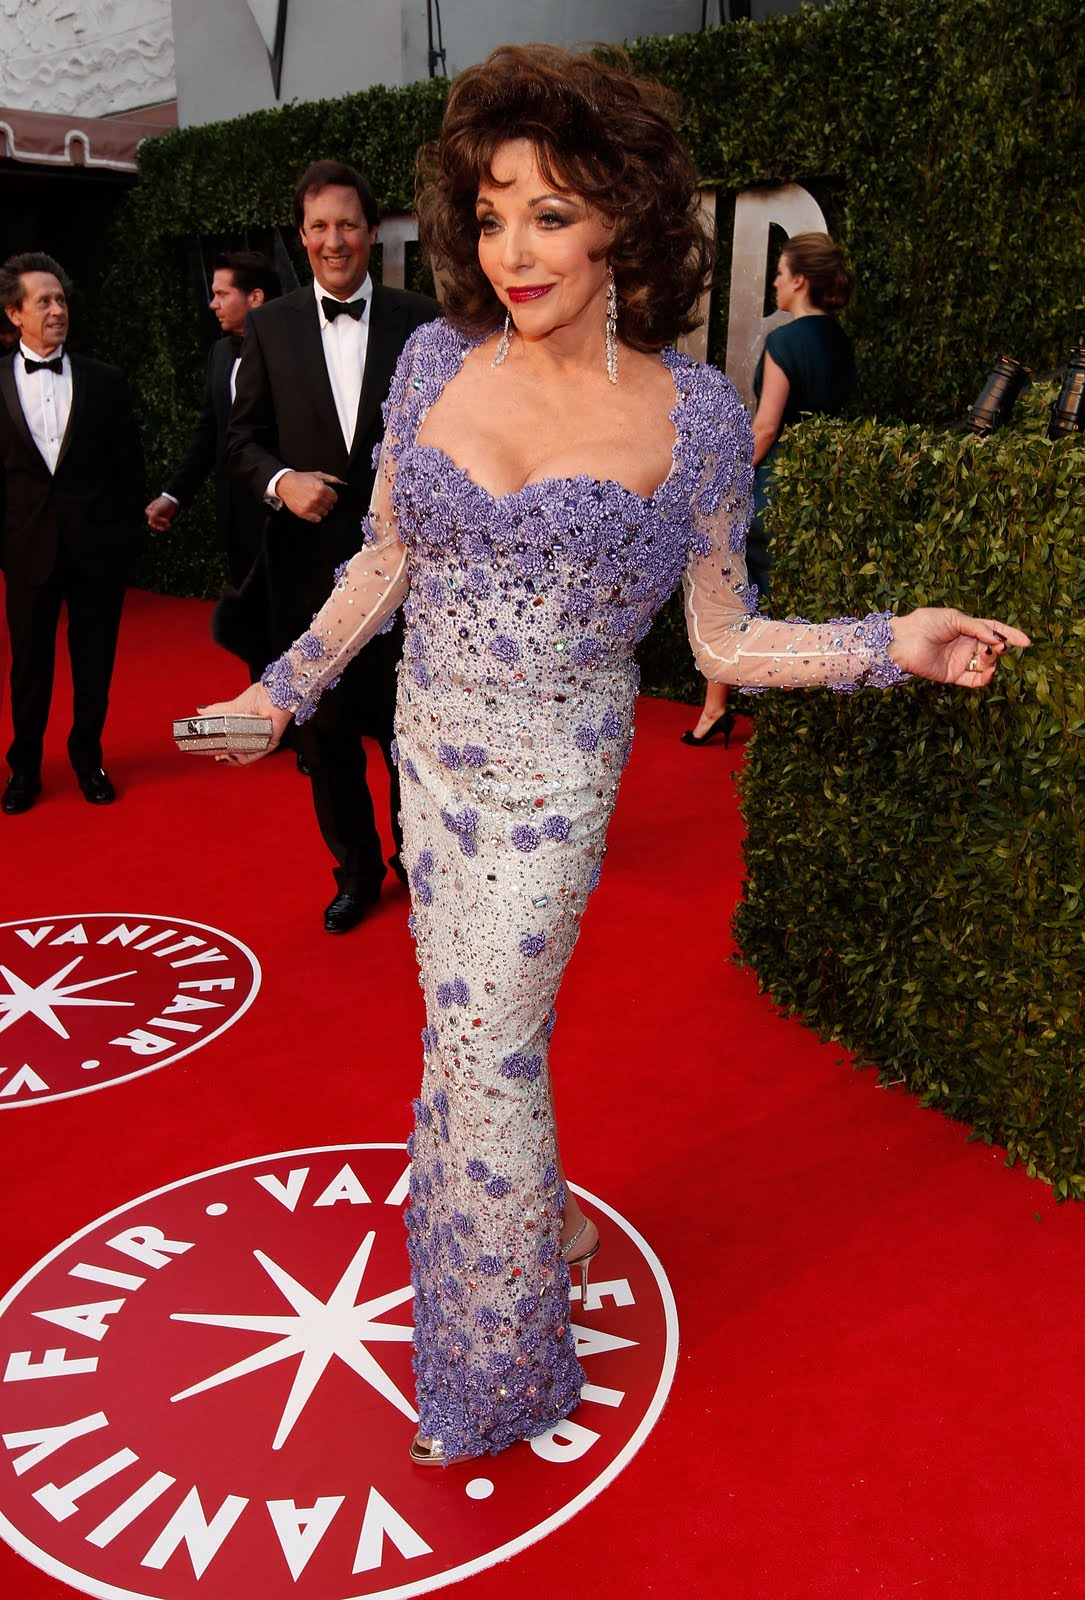 Lbcolby S Dynasty Blog Pix Joan Collins Most Recent Red